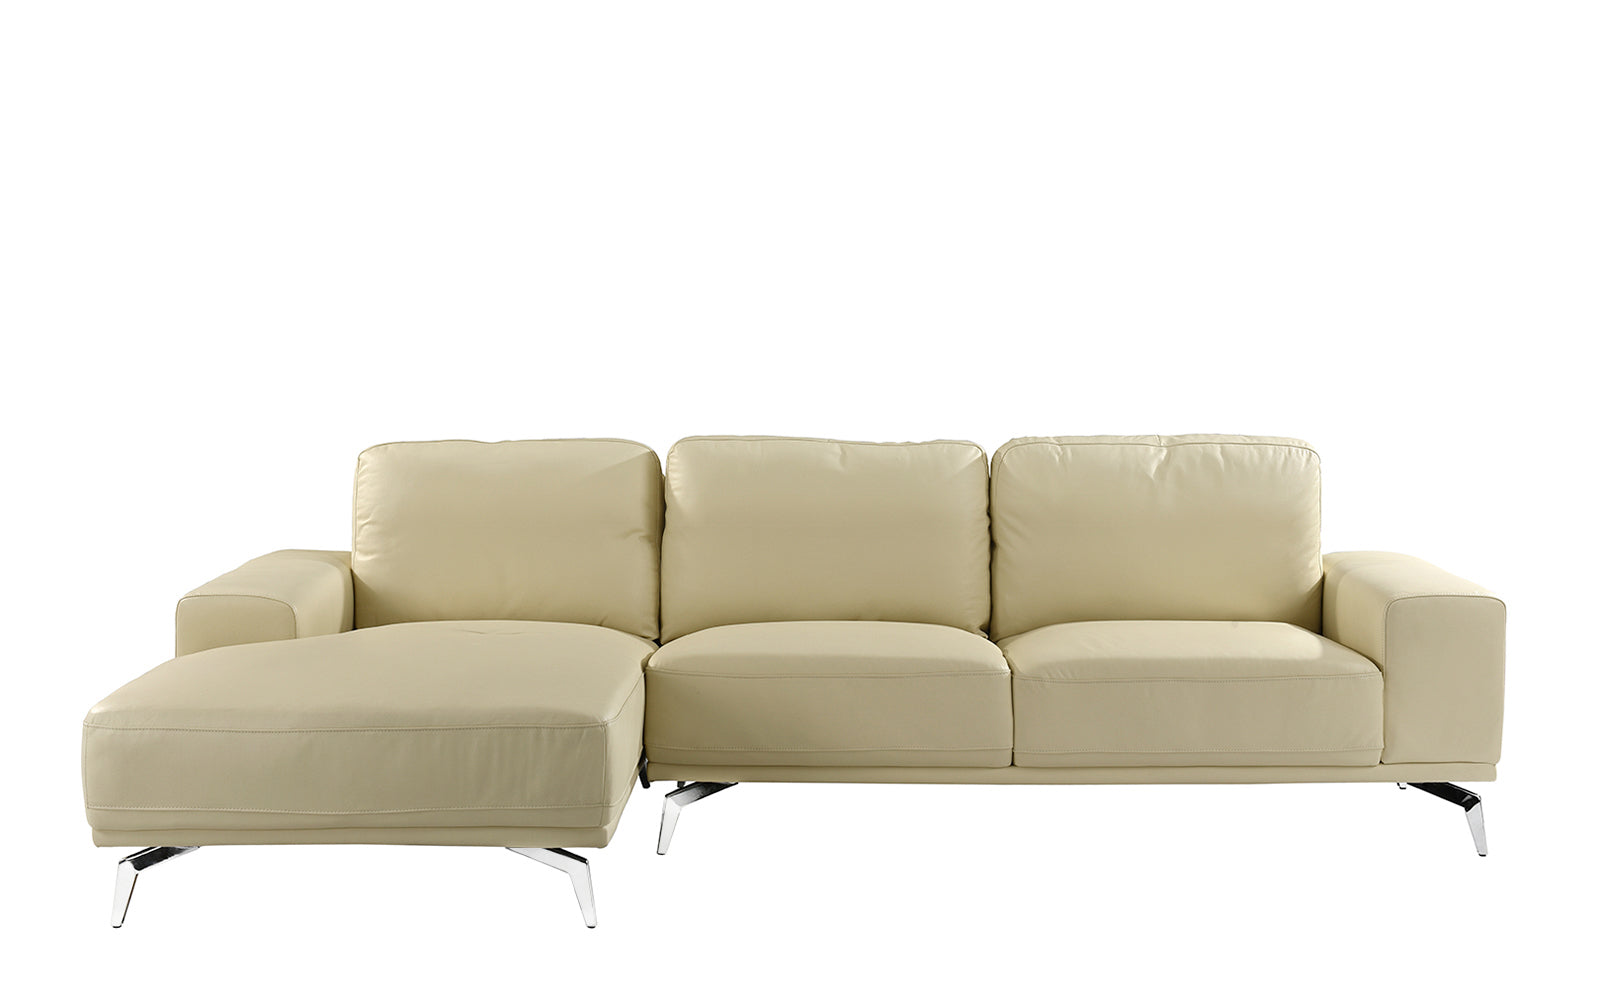 Benci Modern Low Profile L Shape Sectional Sofa With Left Chaise